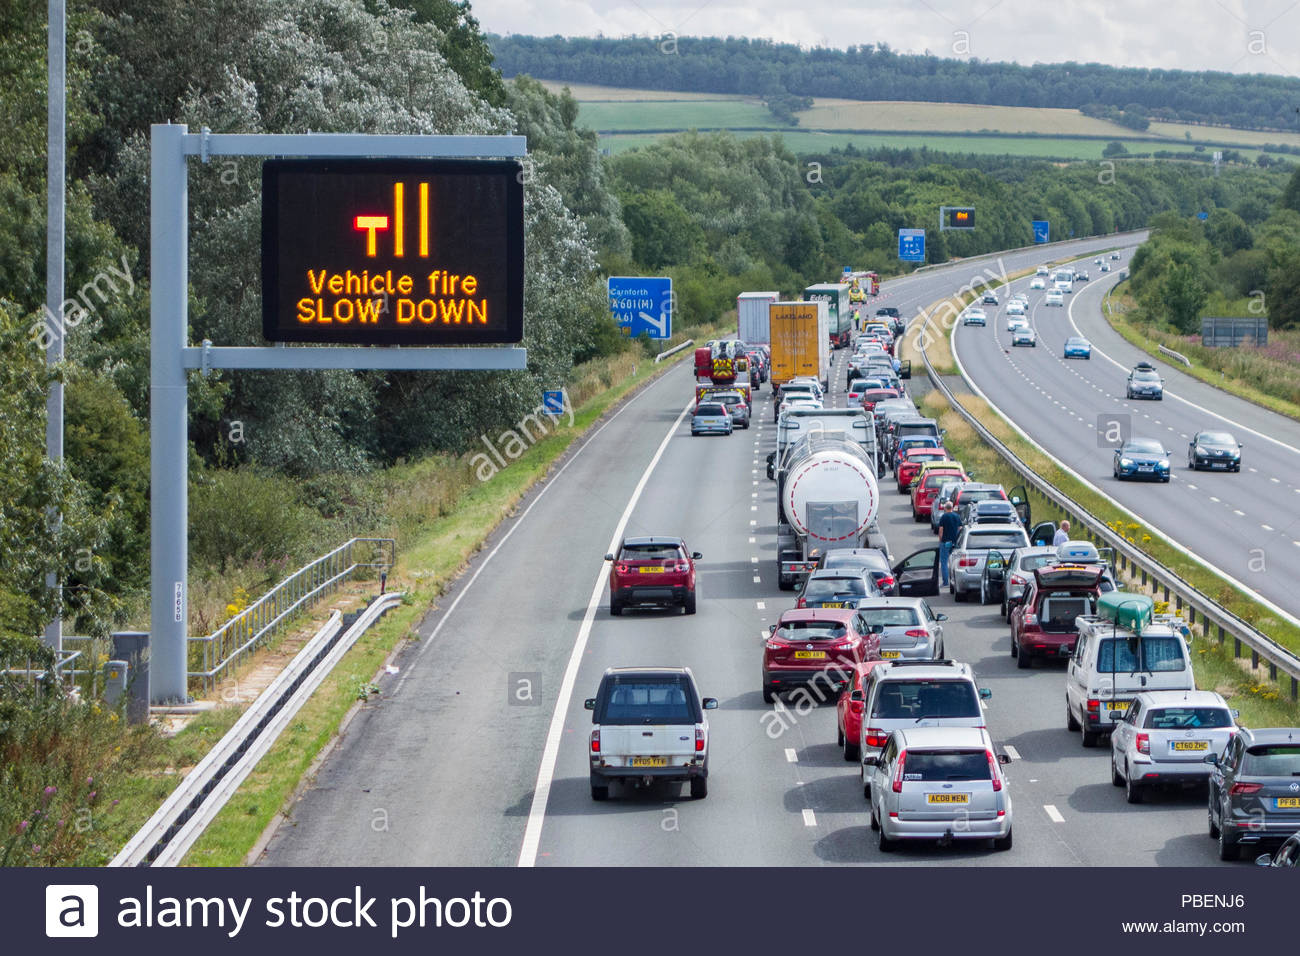 Carnforth, Lancashire, UK, 28th July 2018, stationary traffic on the M6 motorway southbound, between Junctions 36 and 35 just north of Carnforth following a vehicle fire and lane closure / lane closed - Stock Image